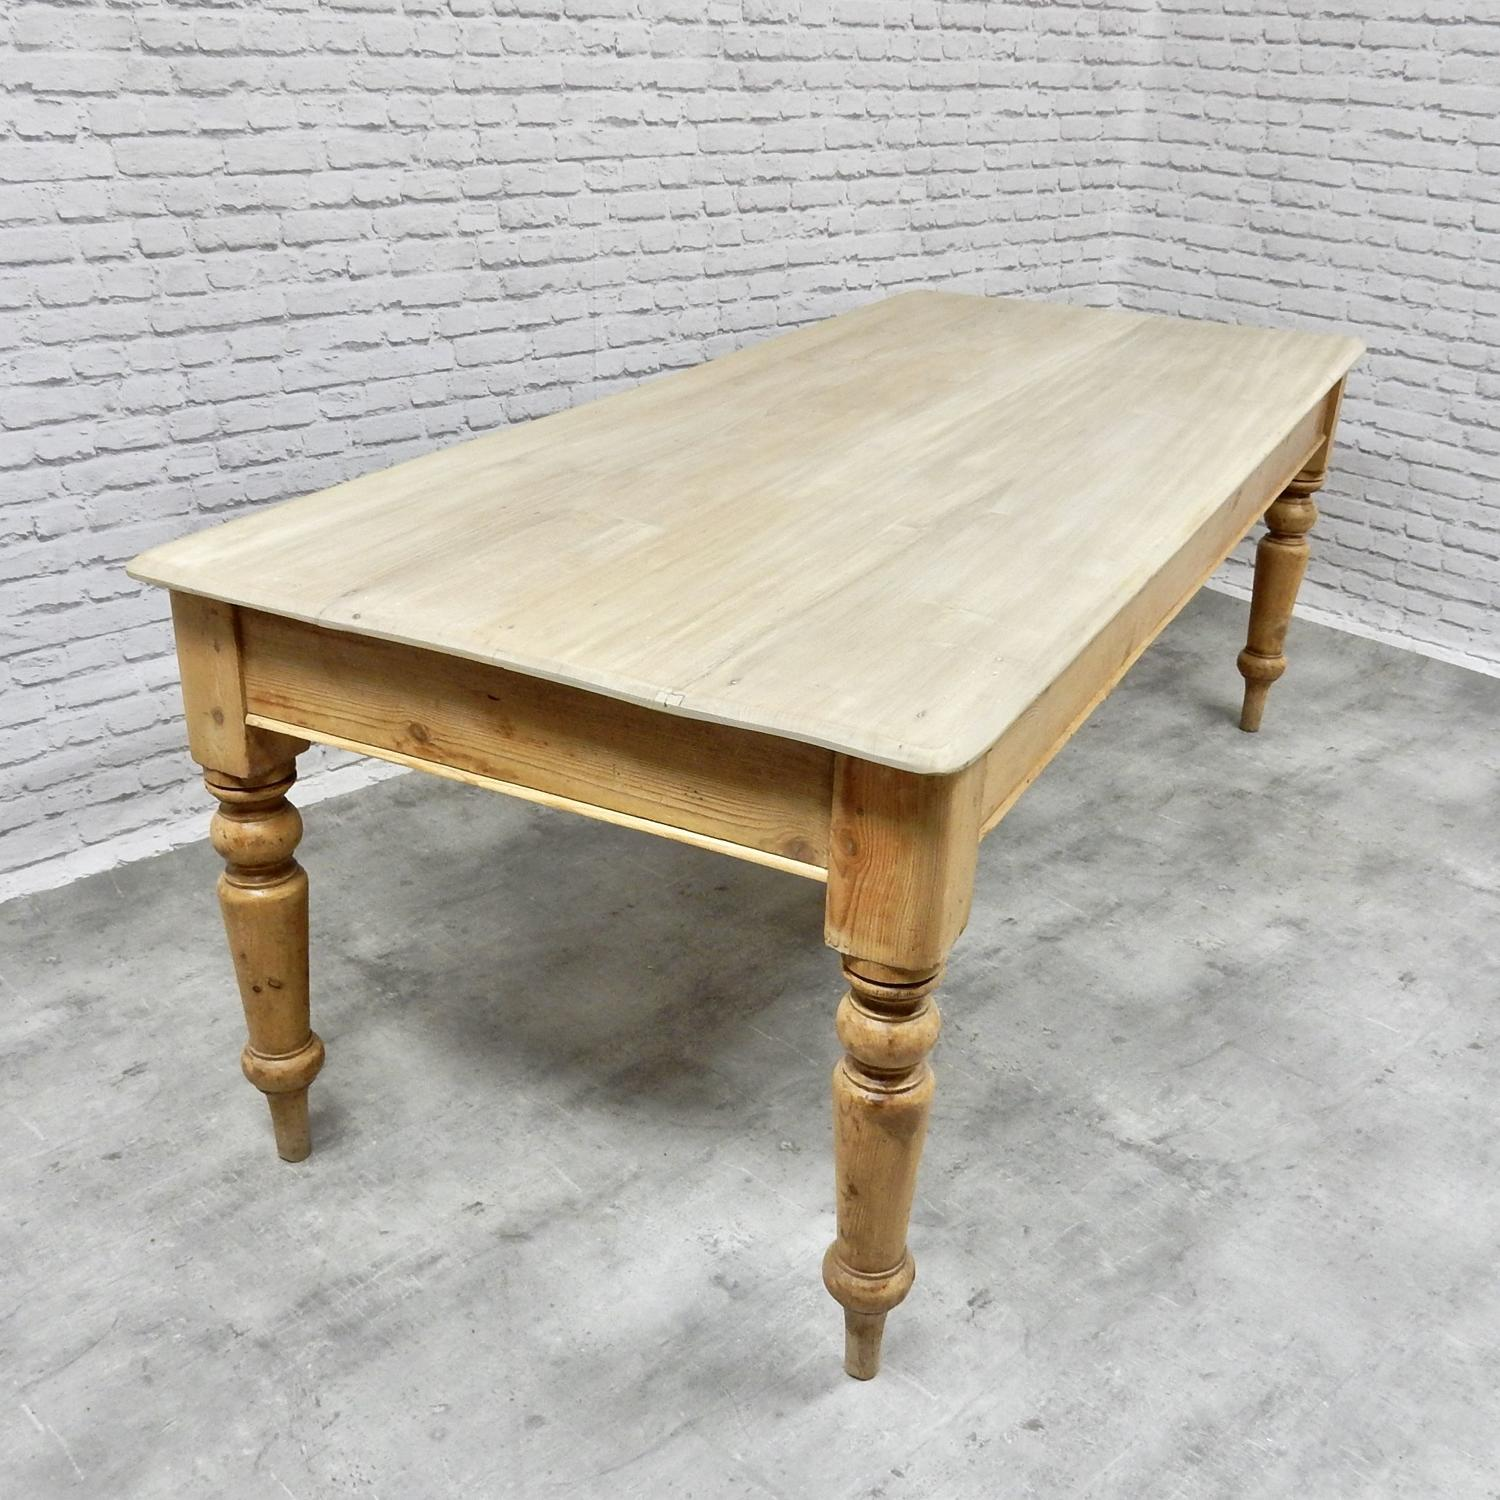 Large C19th Farmhouse Table